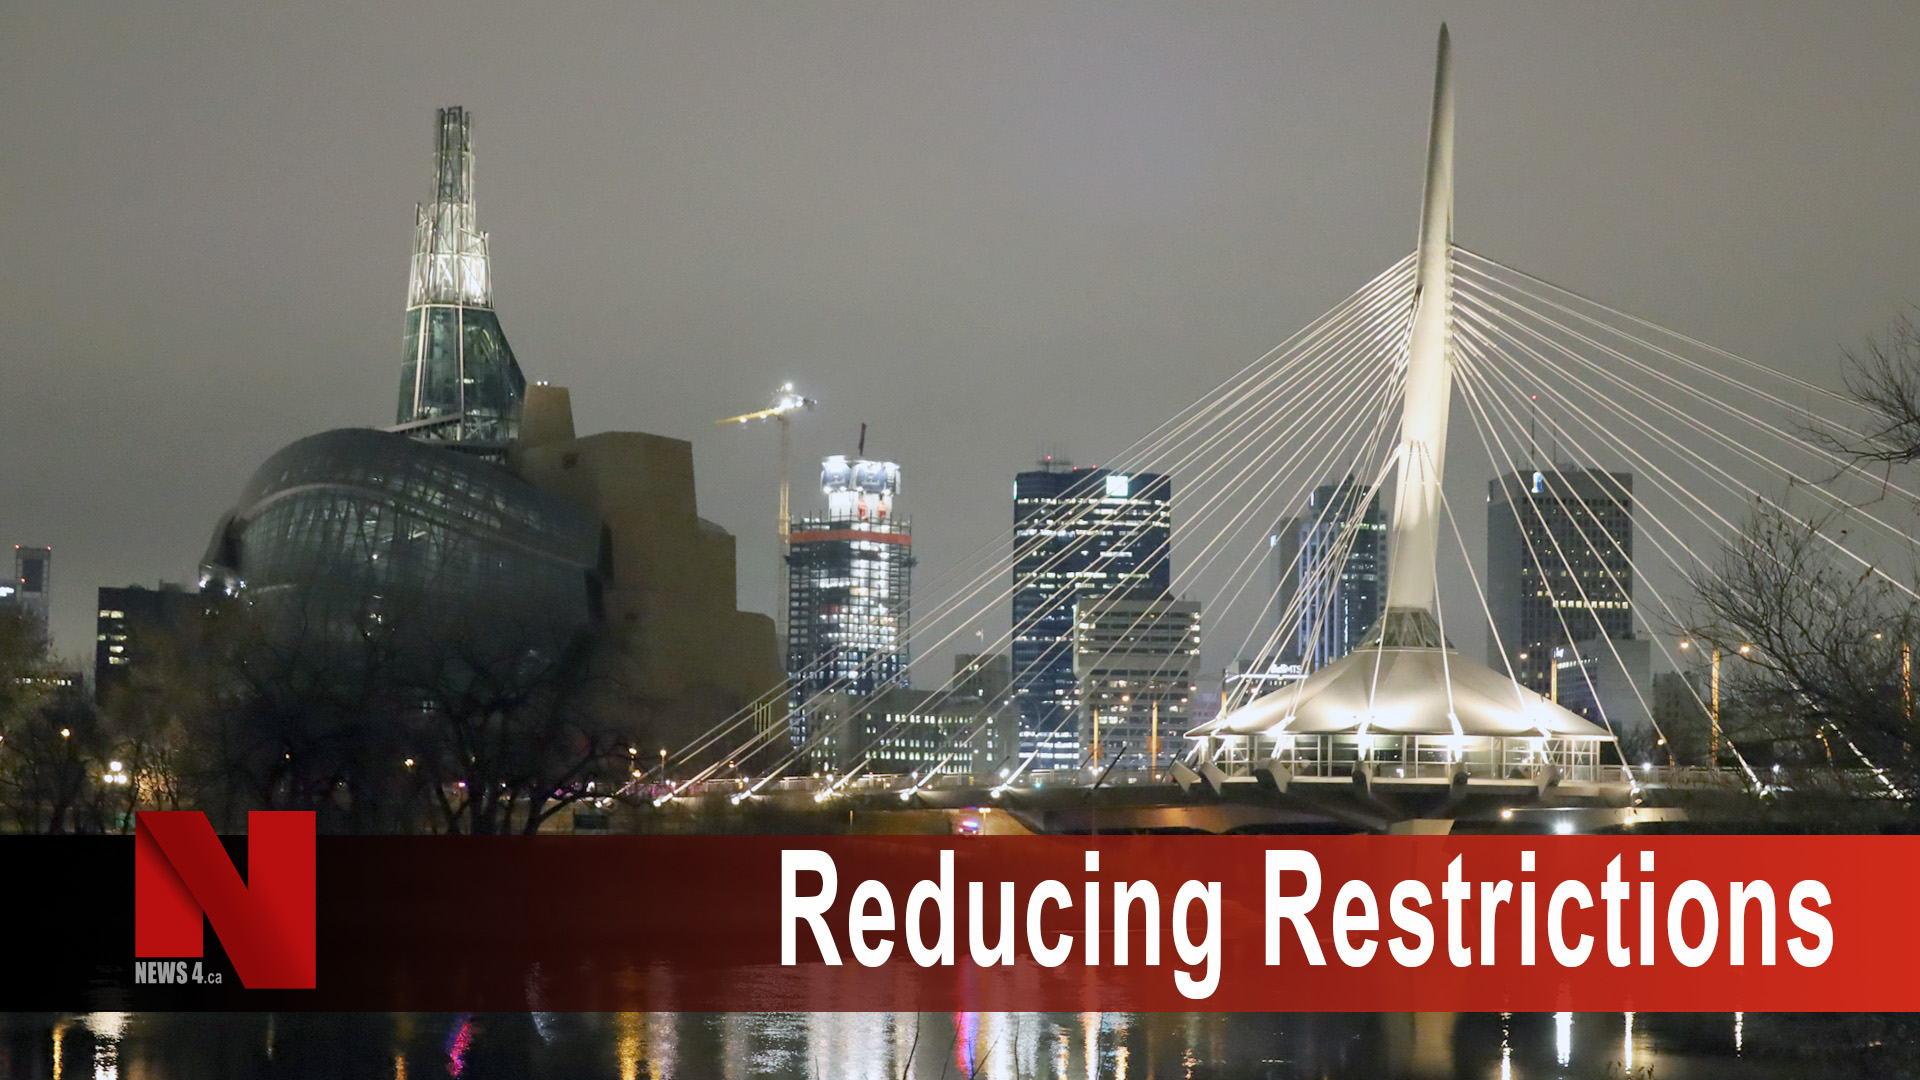 Rediucing Restrictions